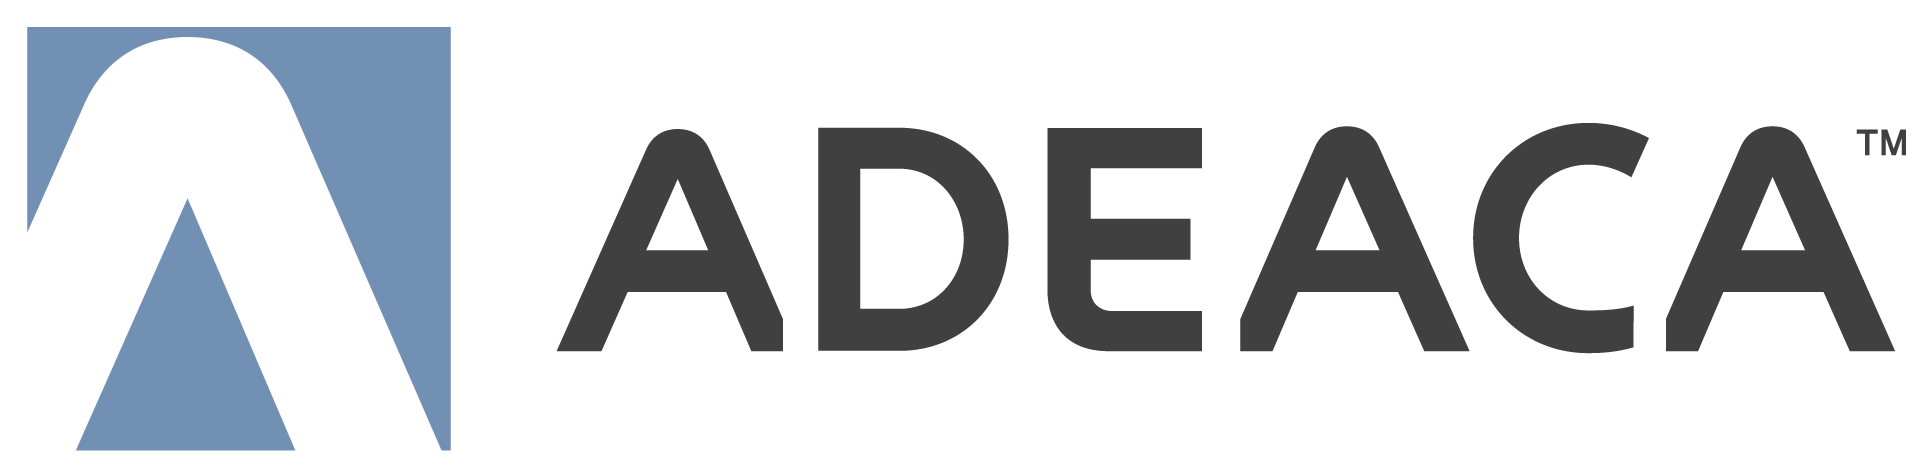 Manufacturing Talk Radio Features Adeaca Project Business Automation